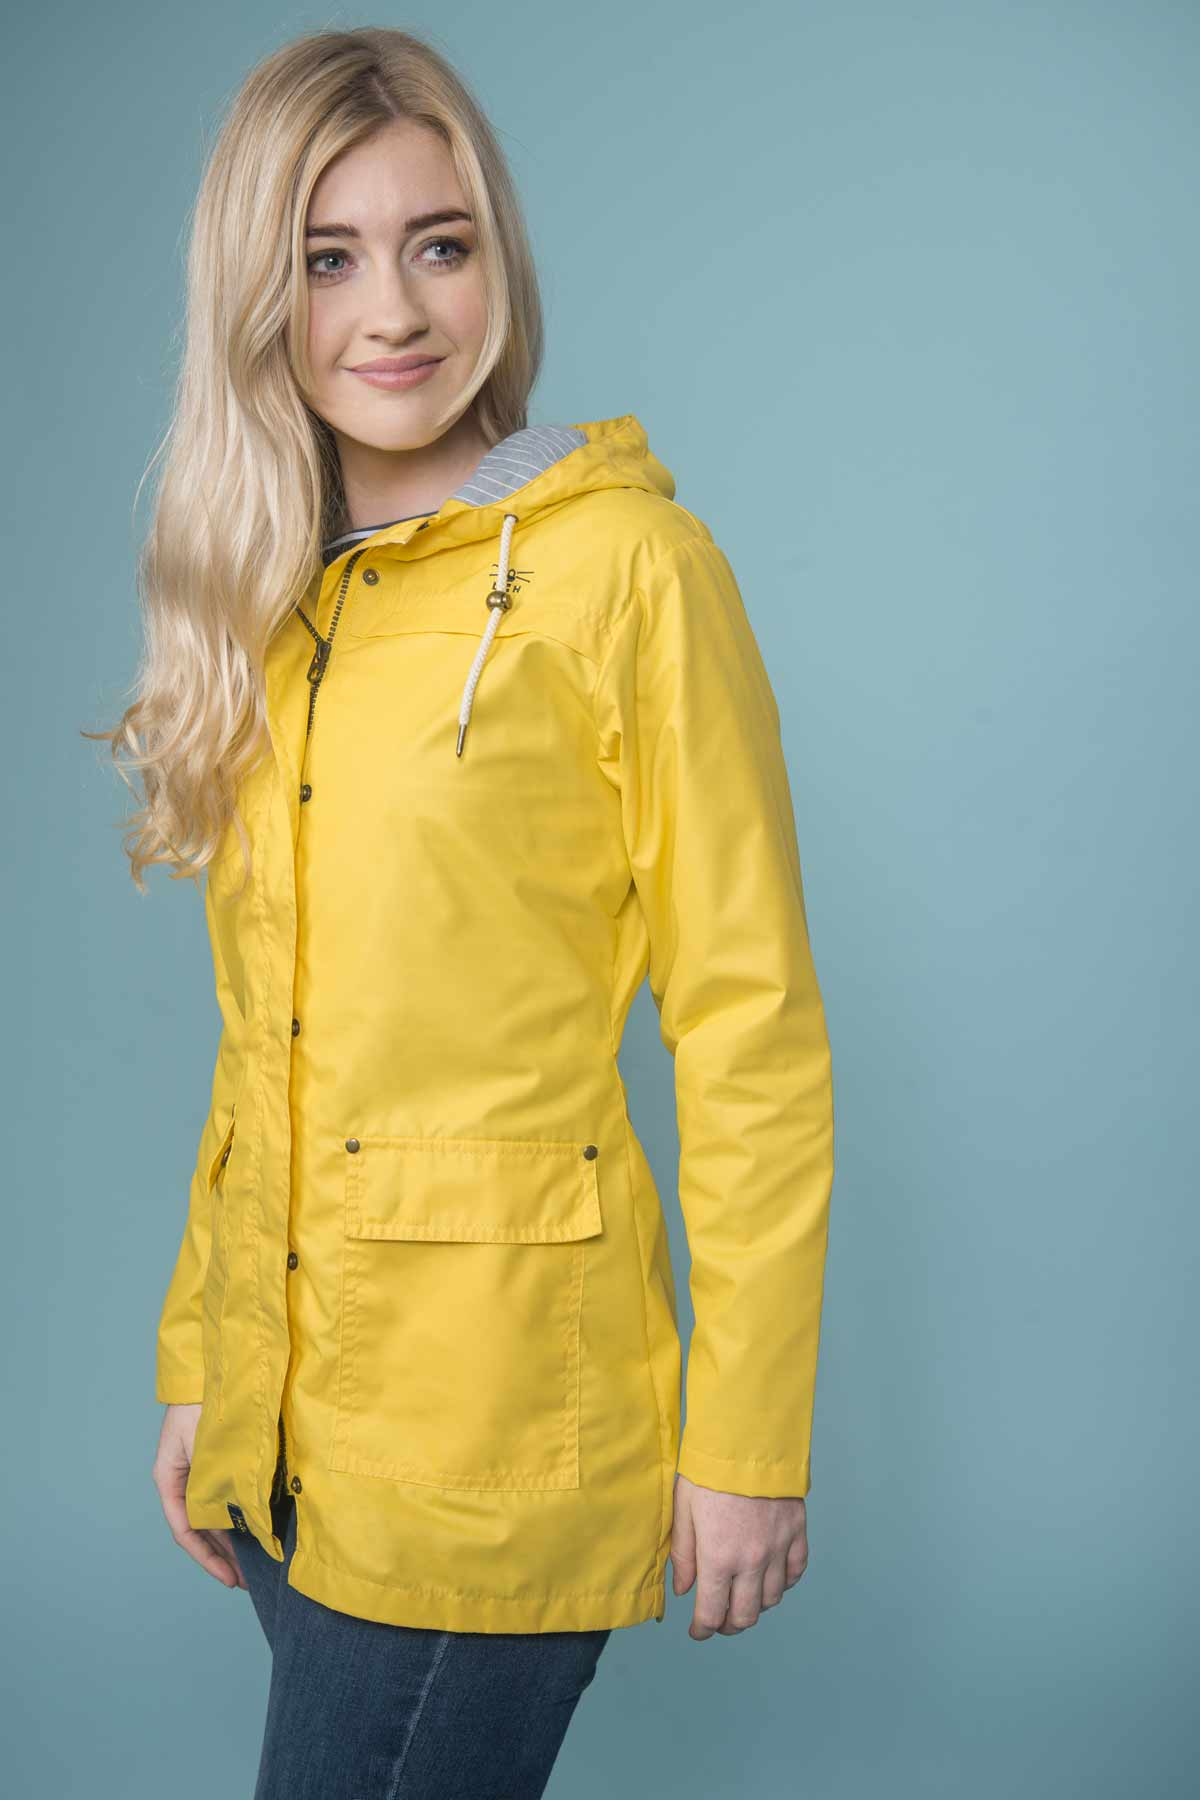 Lighthouse Bowline dandelion rubberised jacket